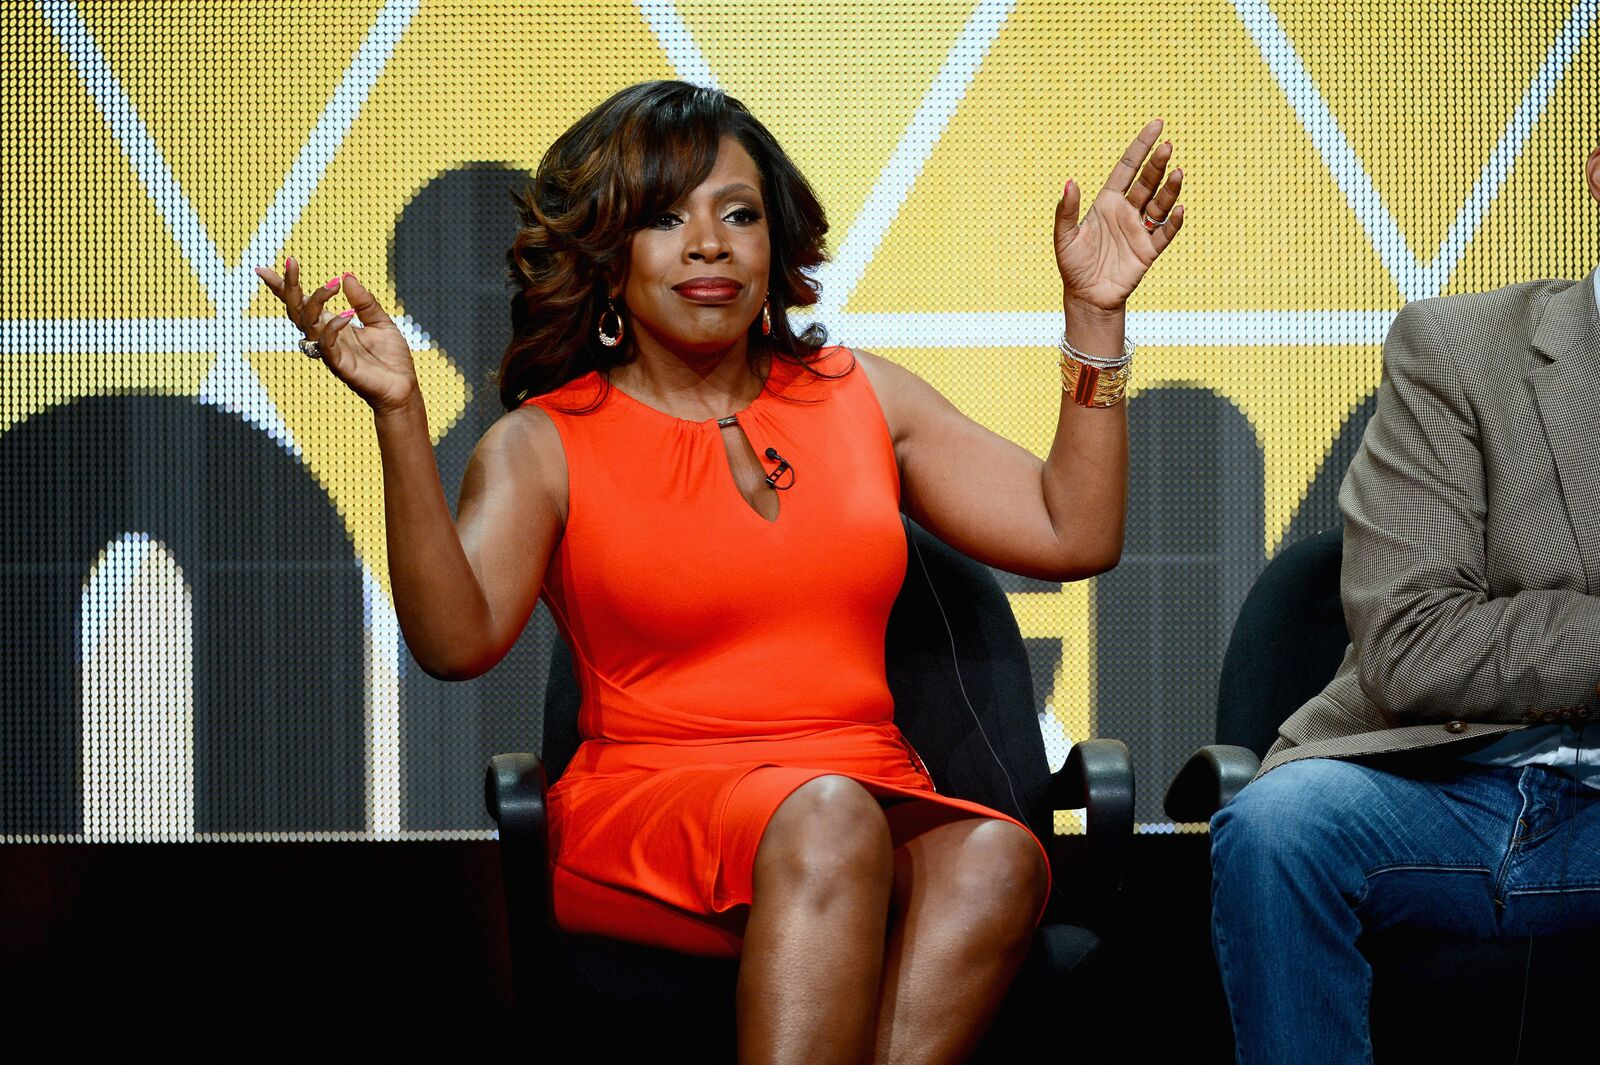 Actress Sheryl Lee Ralph speaks onstage during the Viacom TCA Summer 2013 presentaton at The Beverly Hilton Hotel on July 26, 2013. | Photo: Getty Images